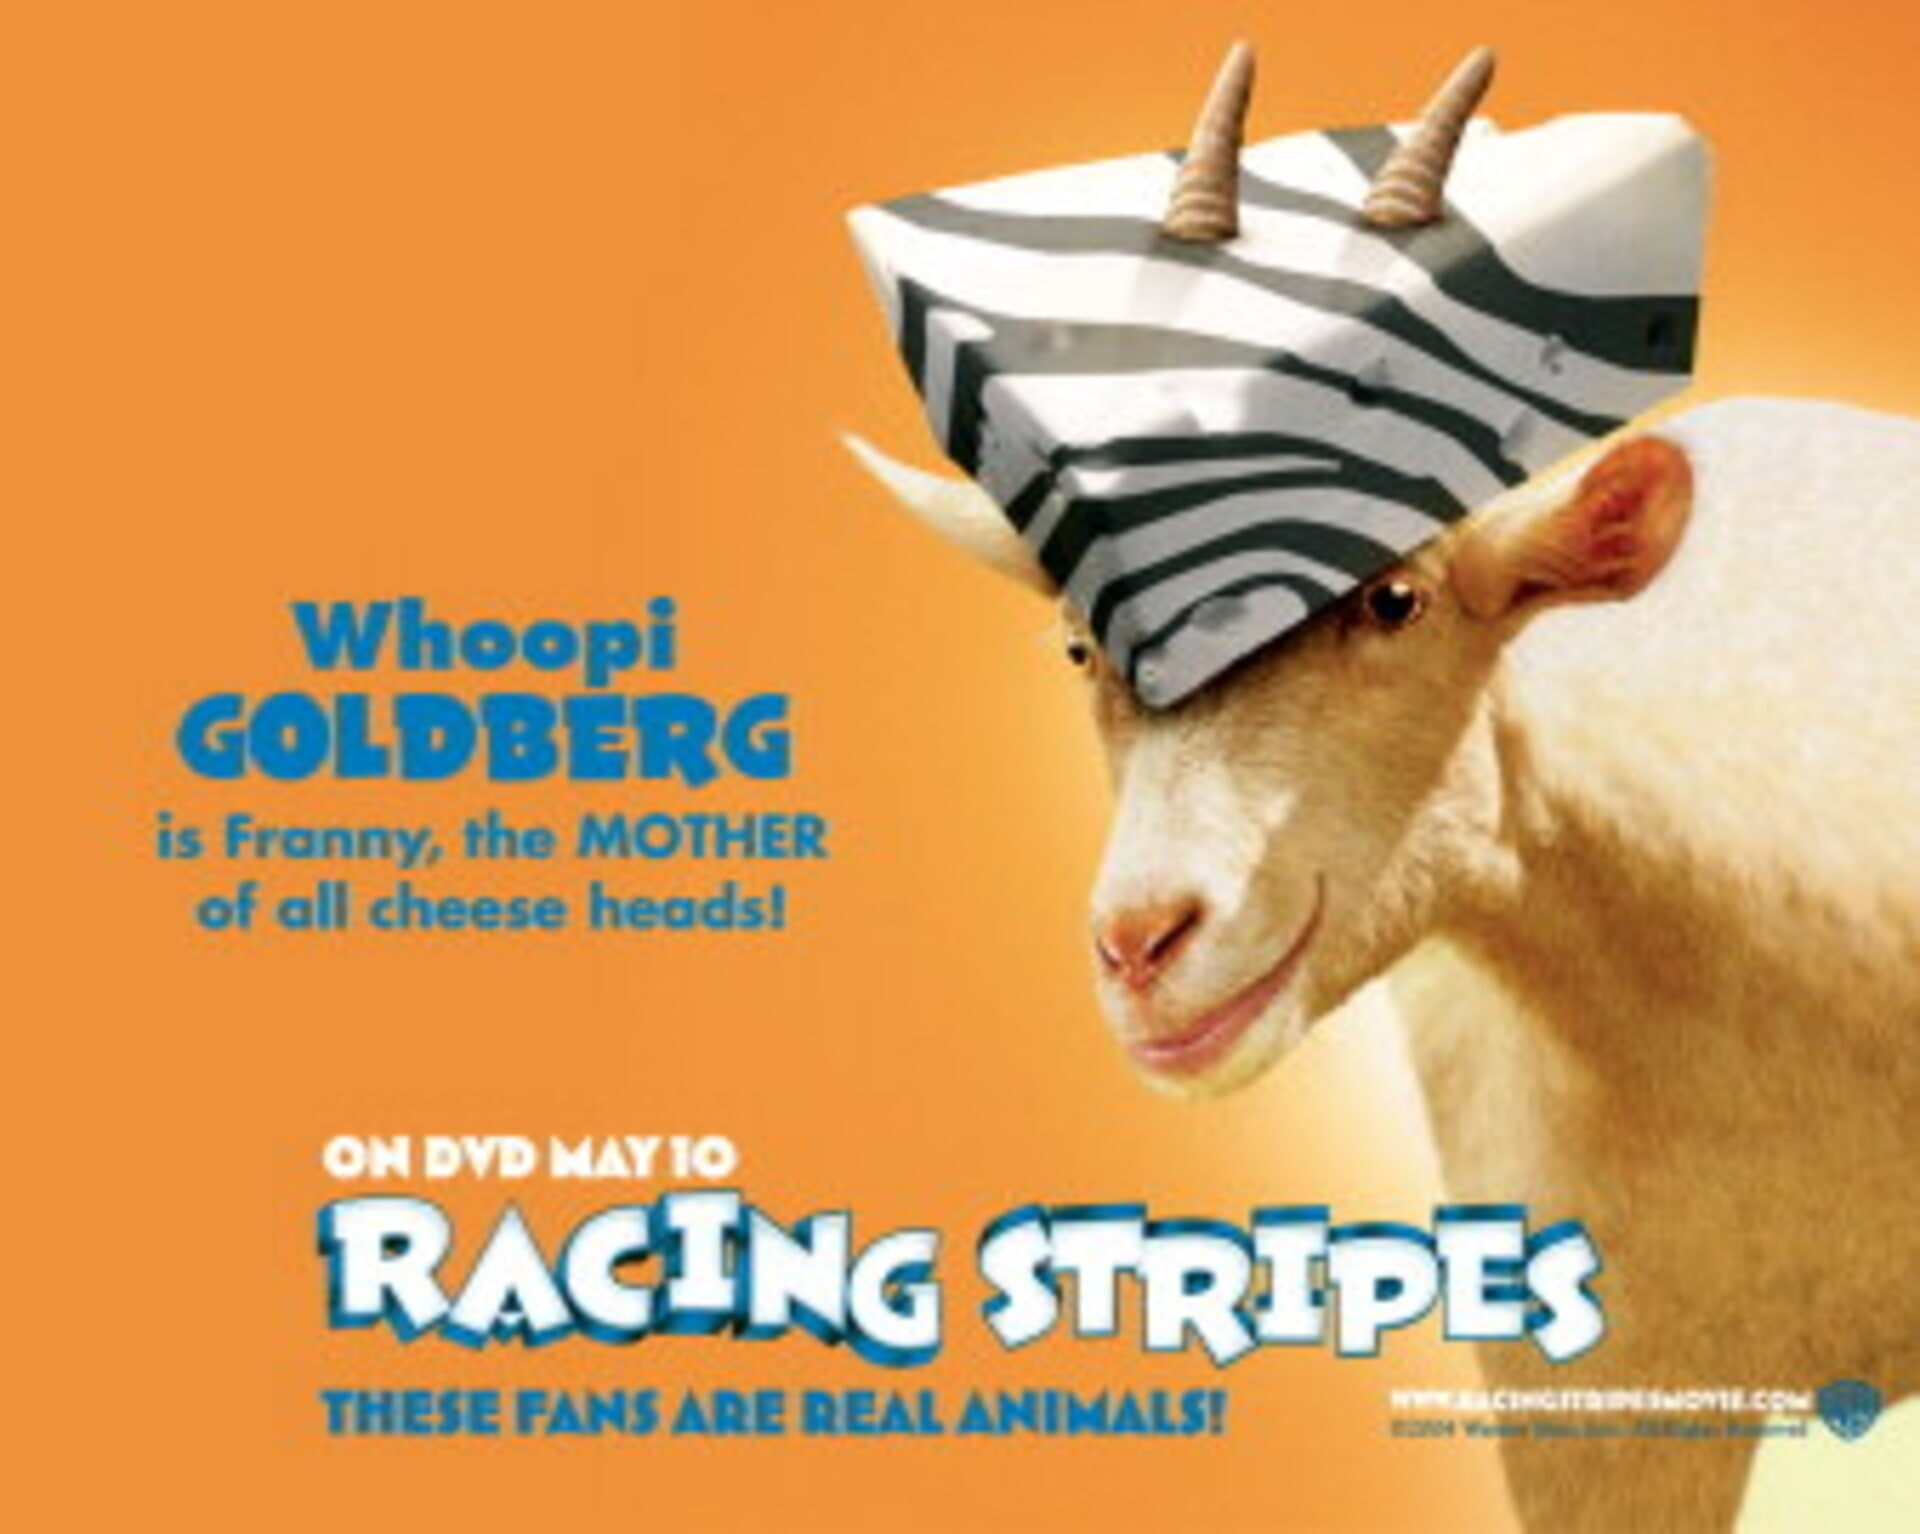 Racing Stripes - Image 55